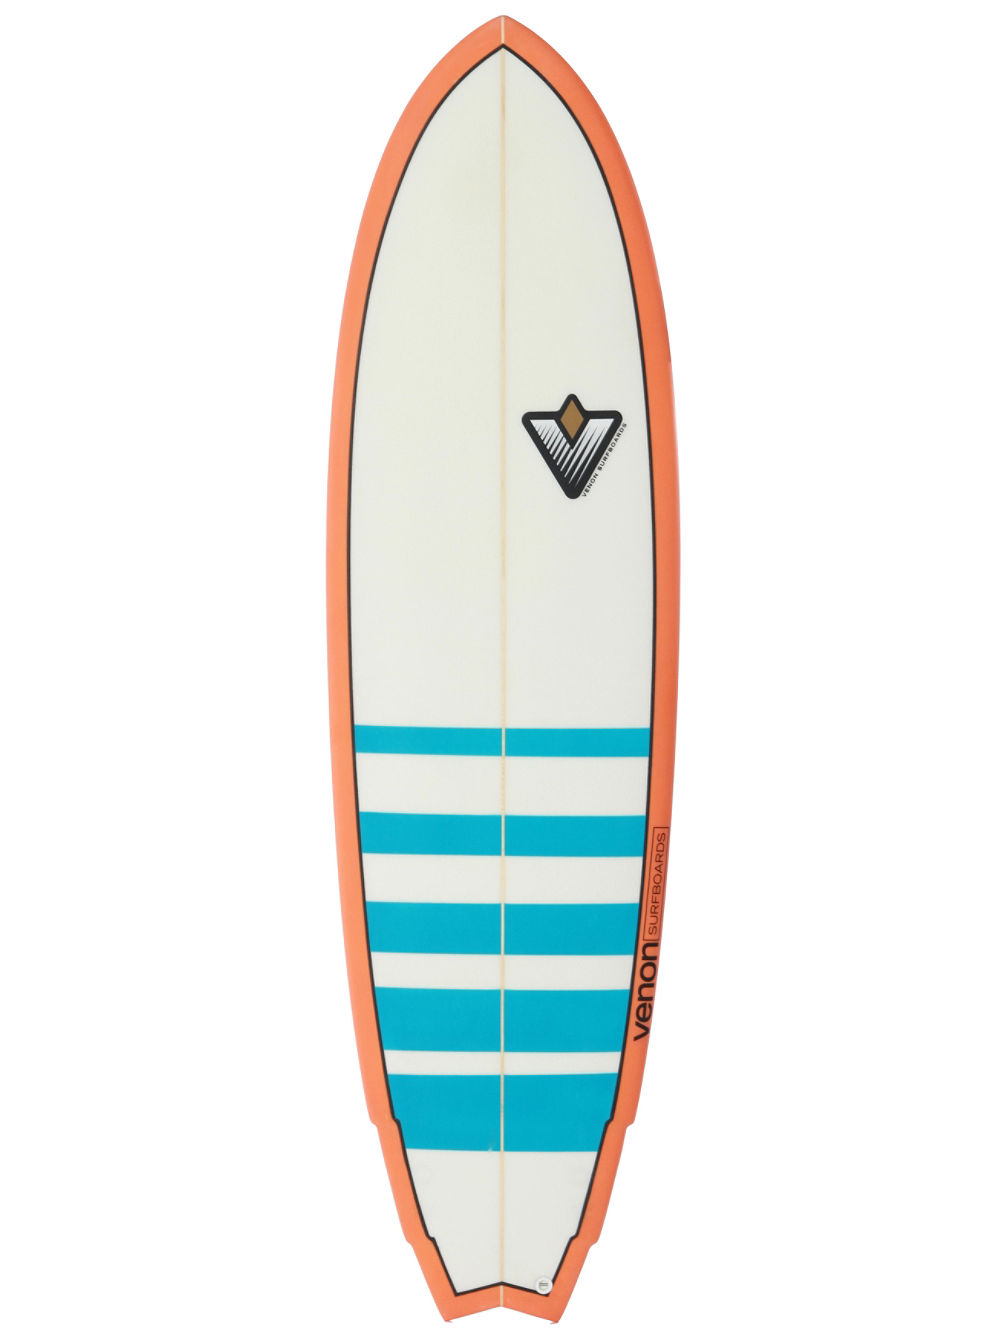 Wingfish 6.3 Fish Surfboard